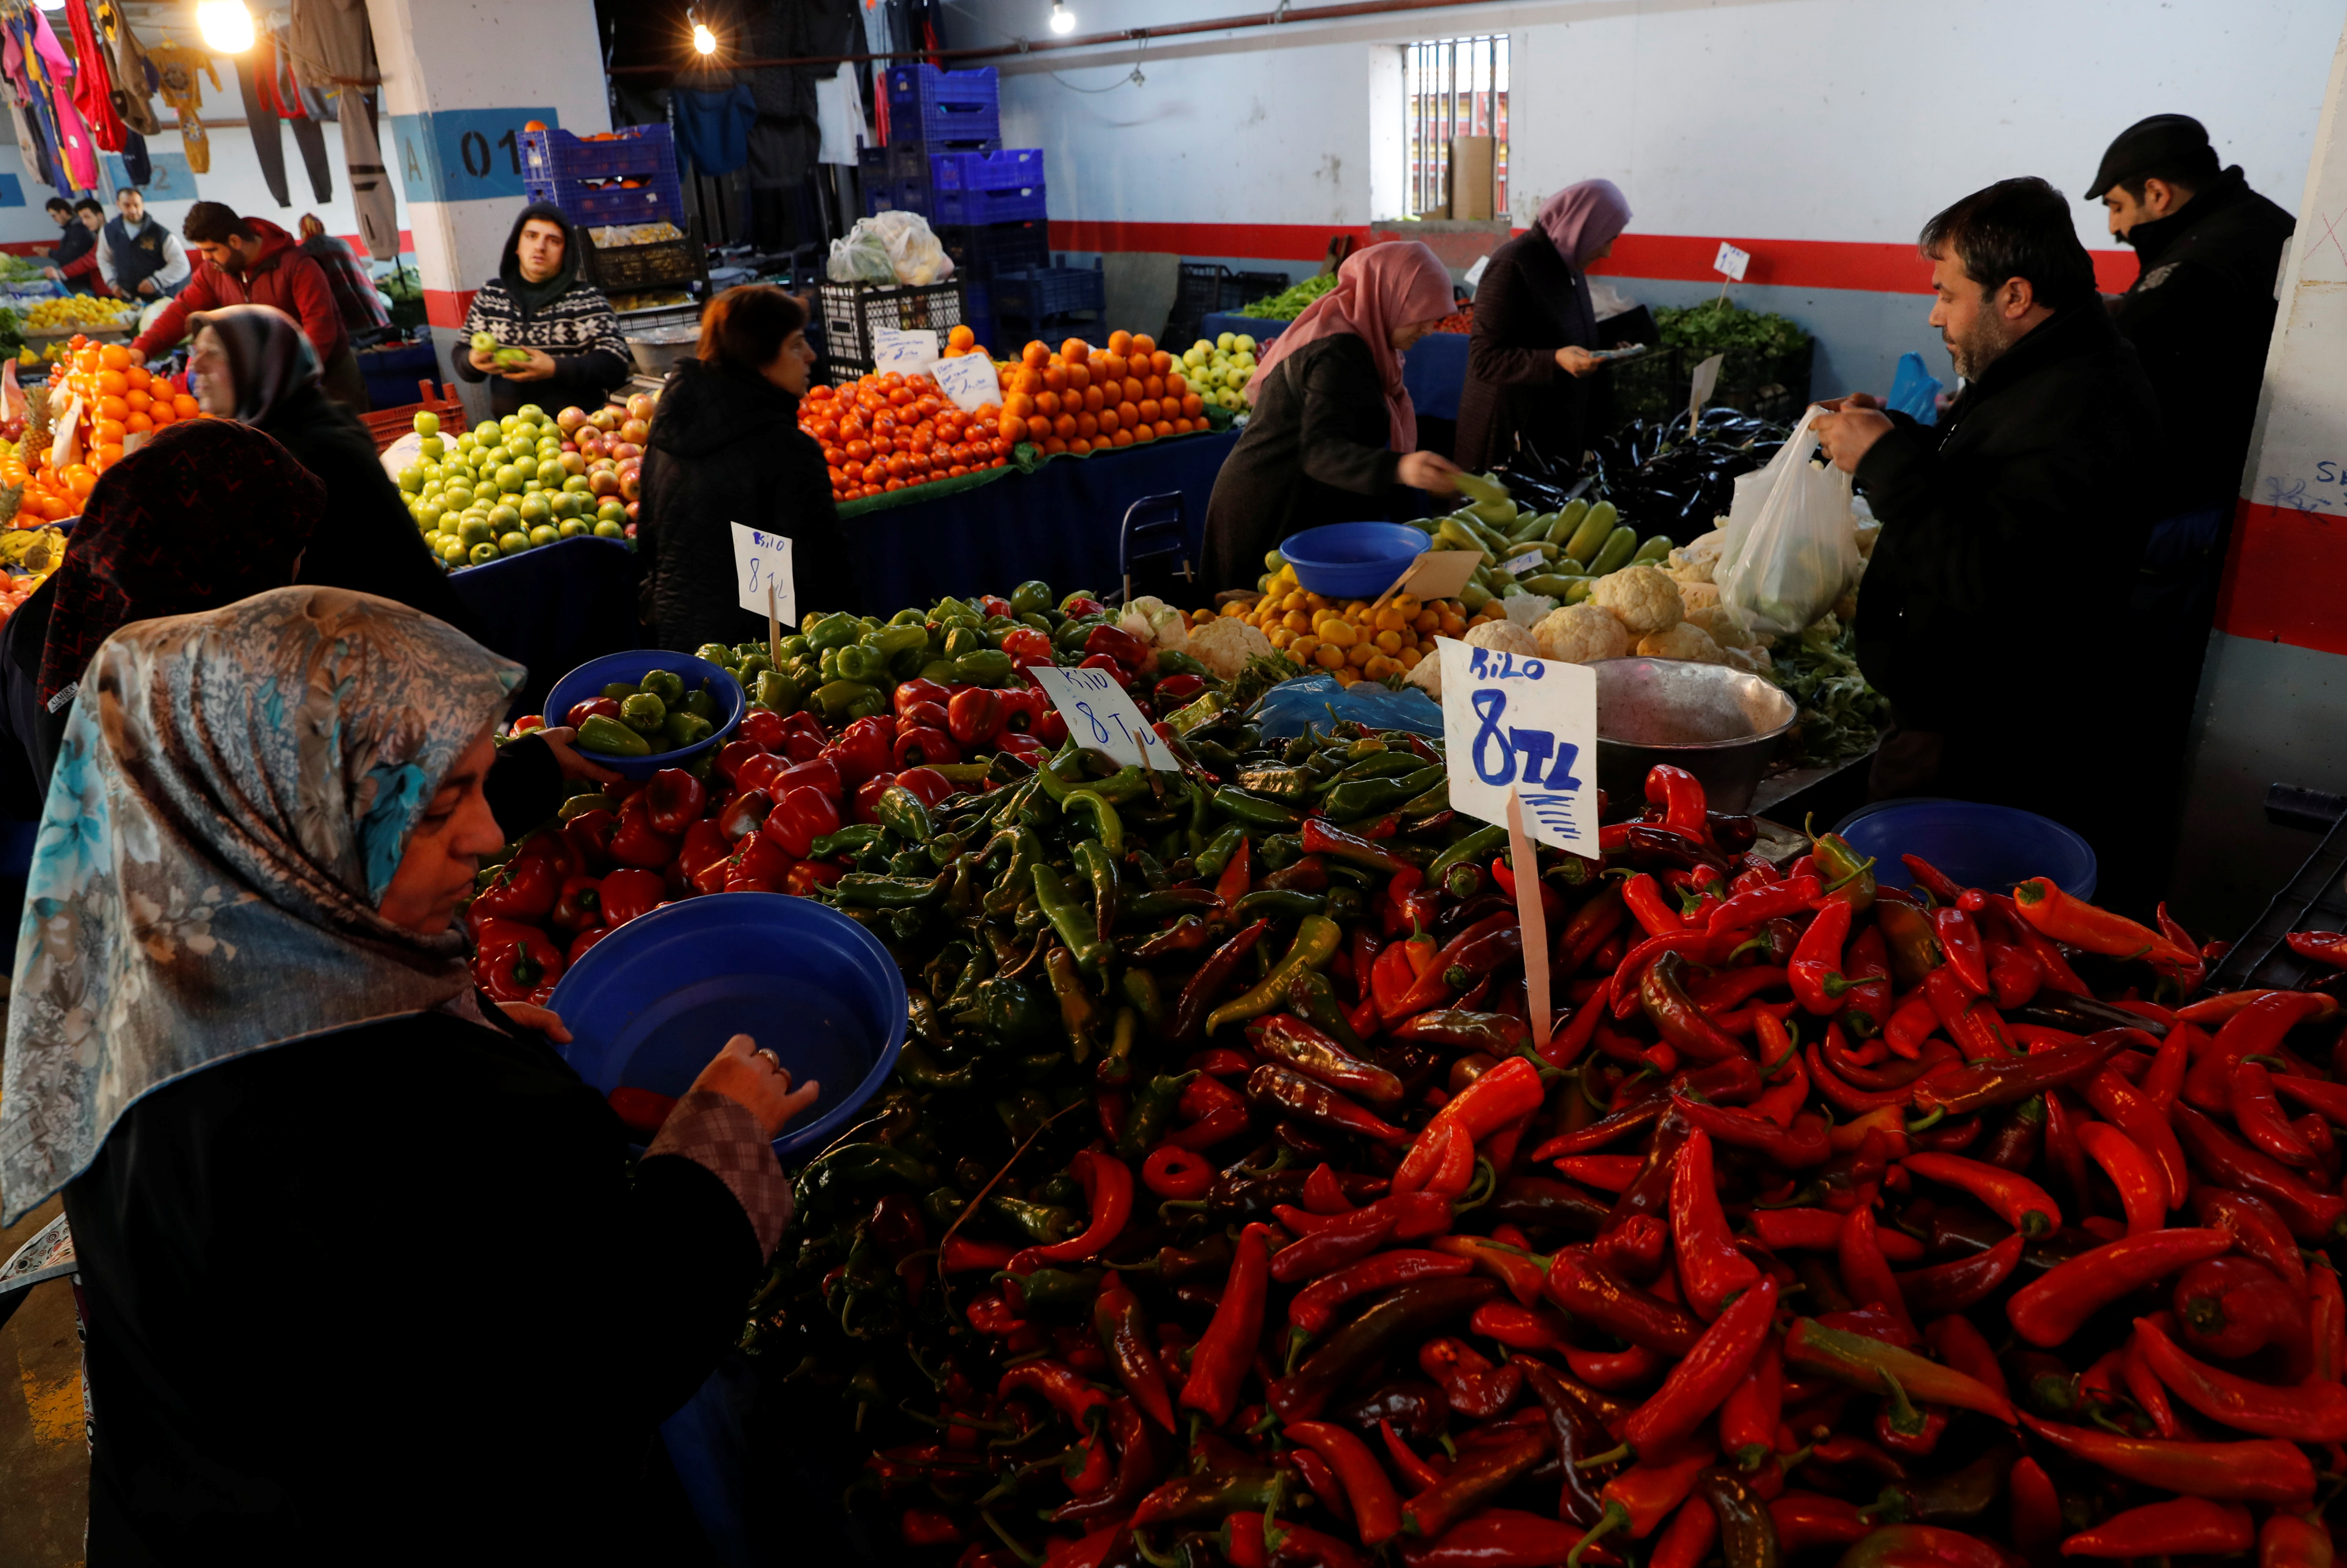 People shop at a food market in Istanbul, Turkey, February 11, 2019. REUTERS/Murad Sezer